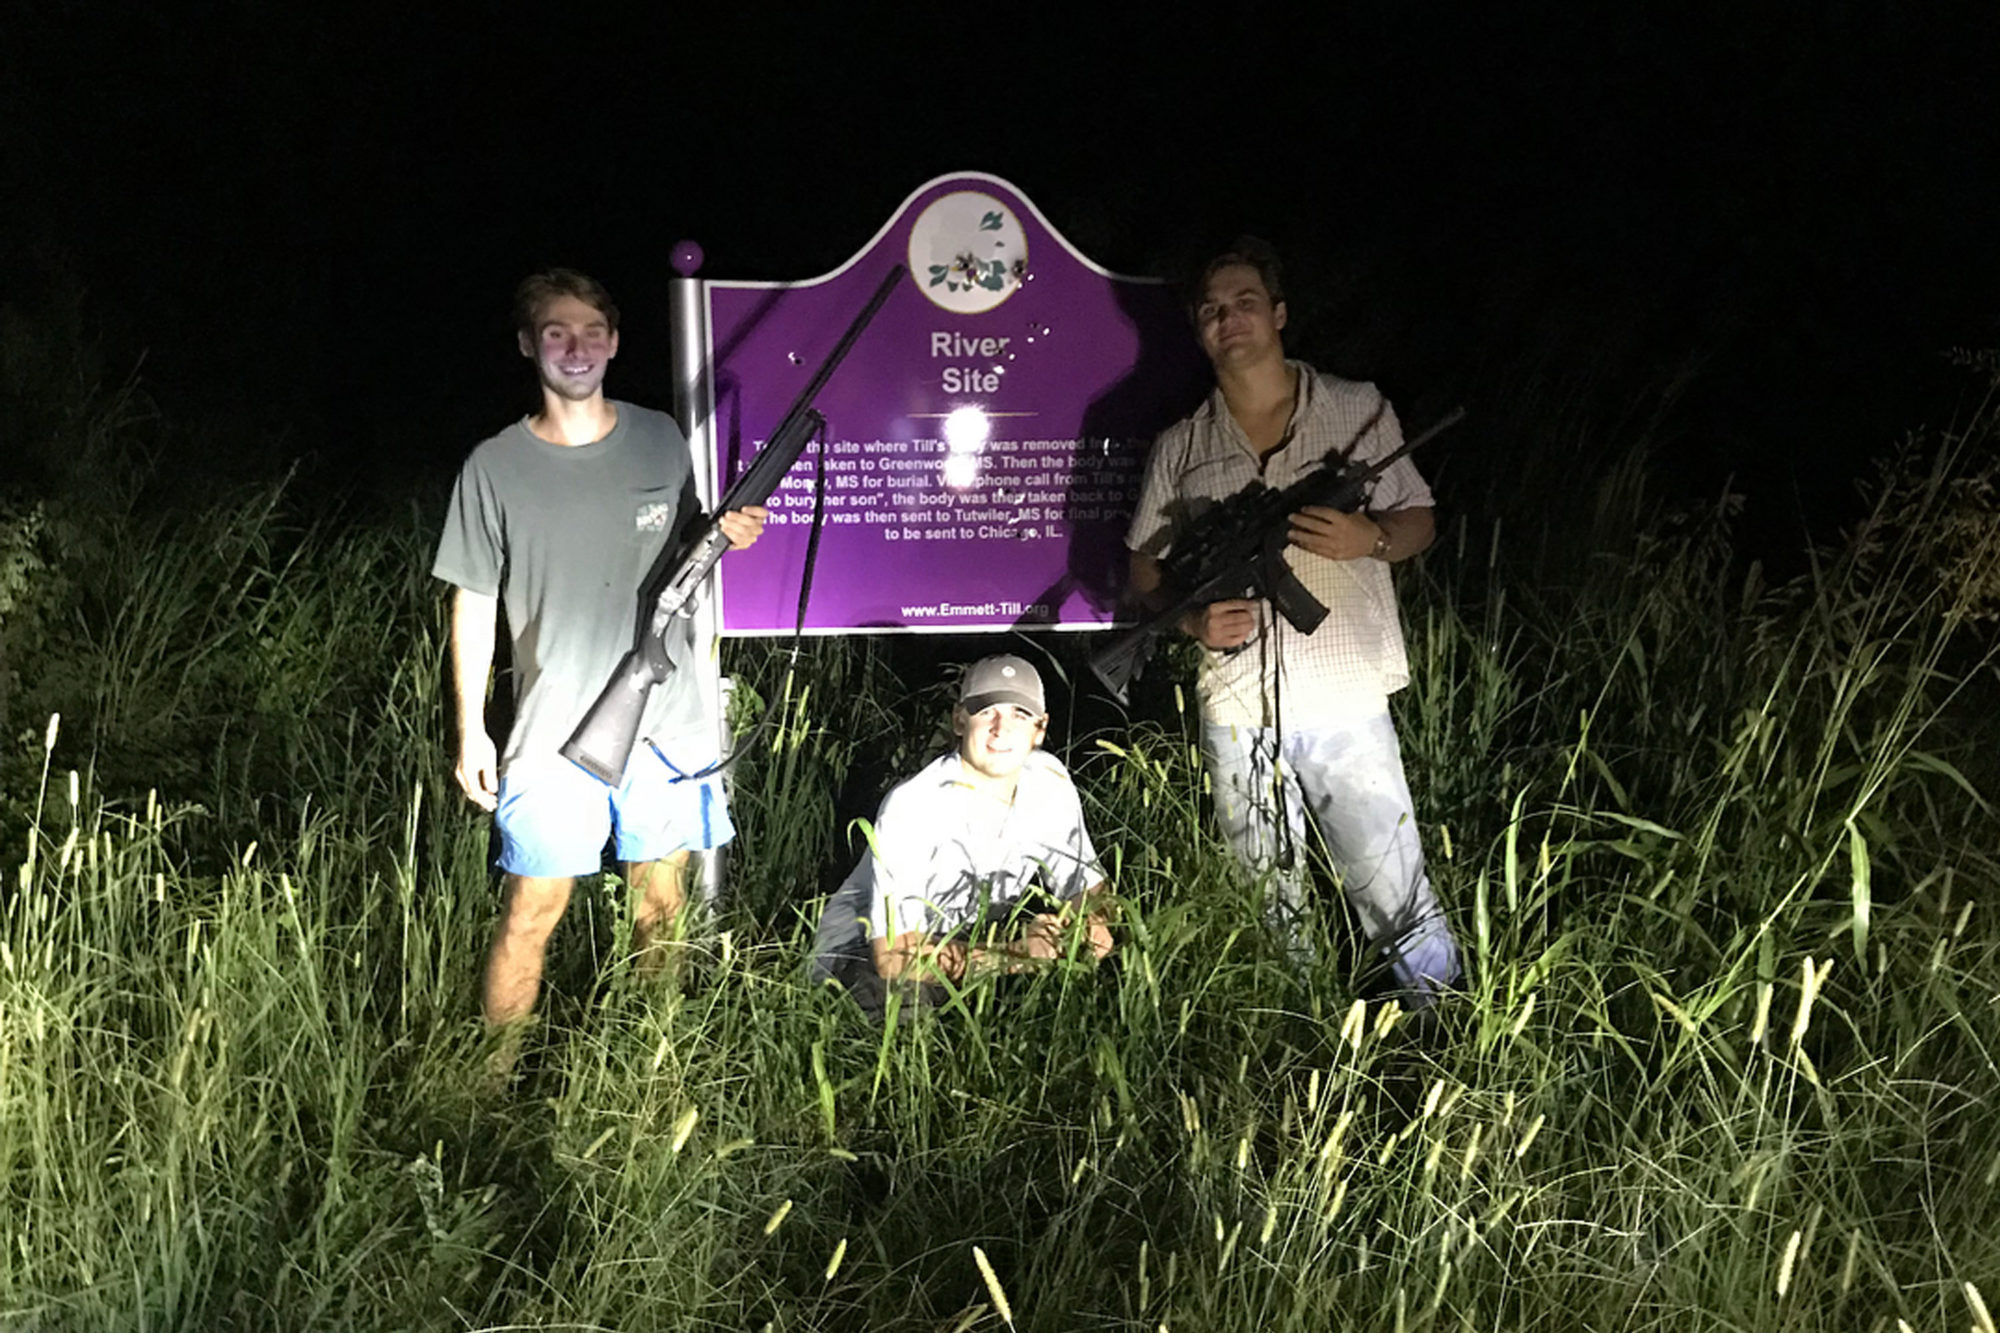 We Found Photos of Ole Miss Students Posing With Guns in Front of a Shot-Up Emmett Till Memorial. Now They Face a Possible Civil Rights Investigation.